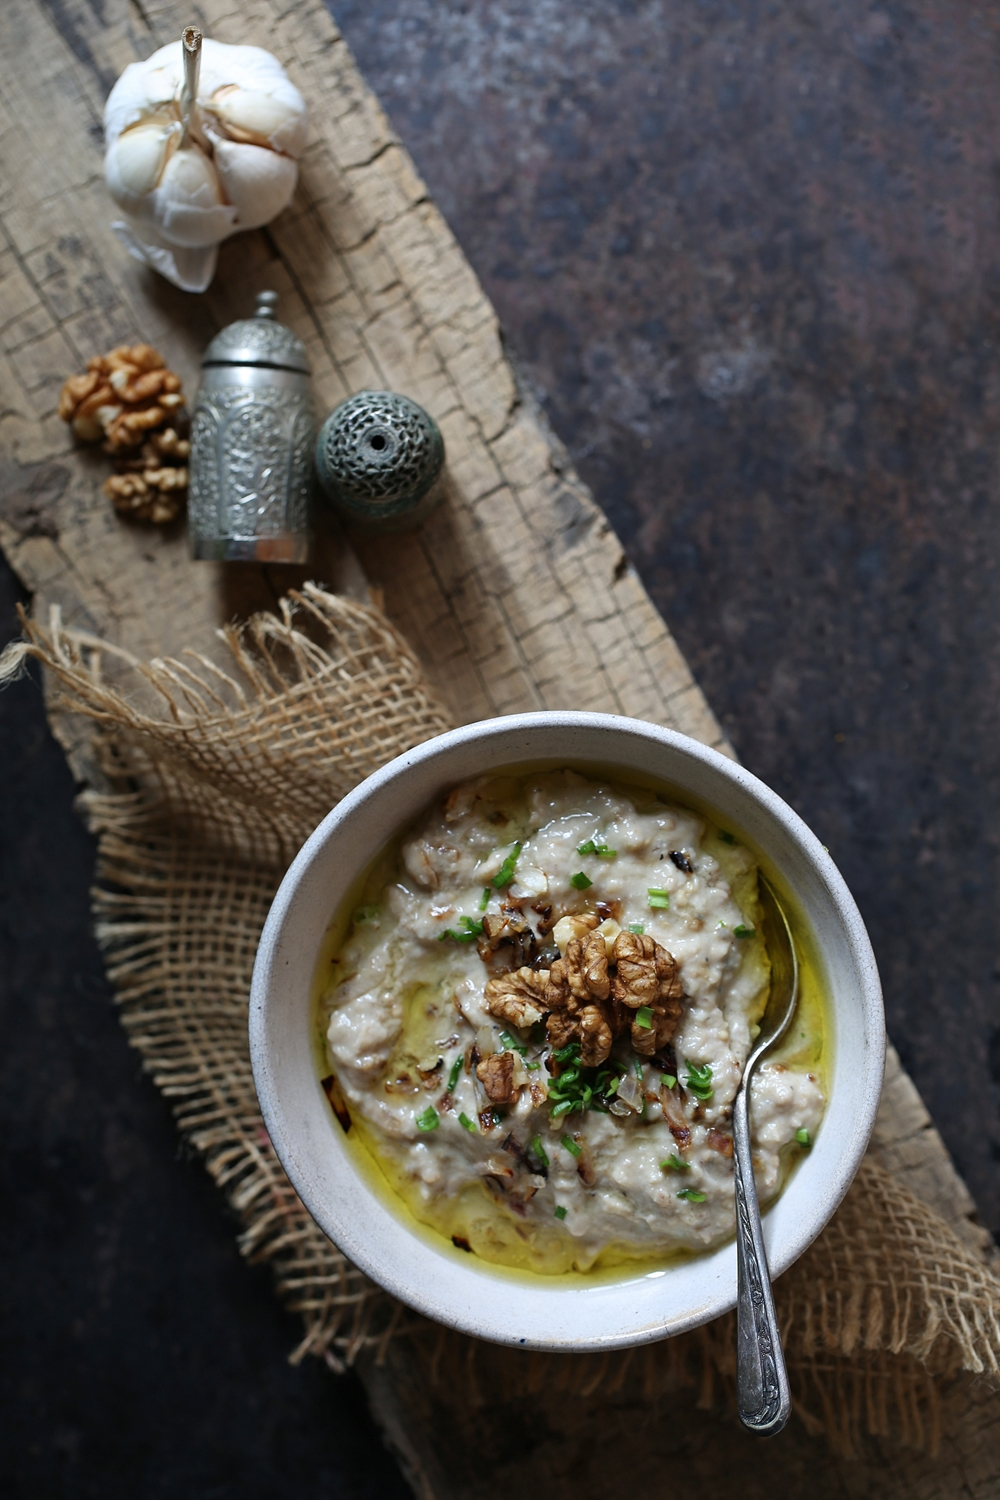 Persian Roasted Eggplant Walnut Dip